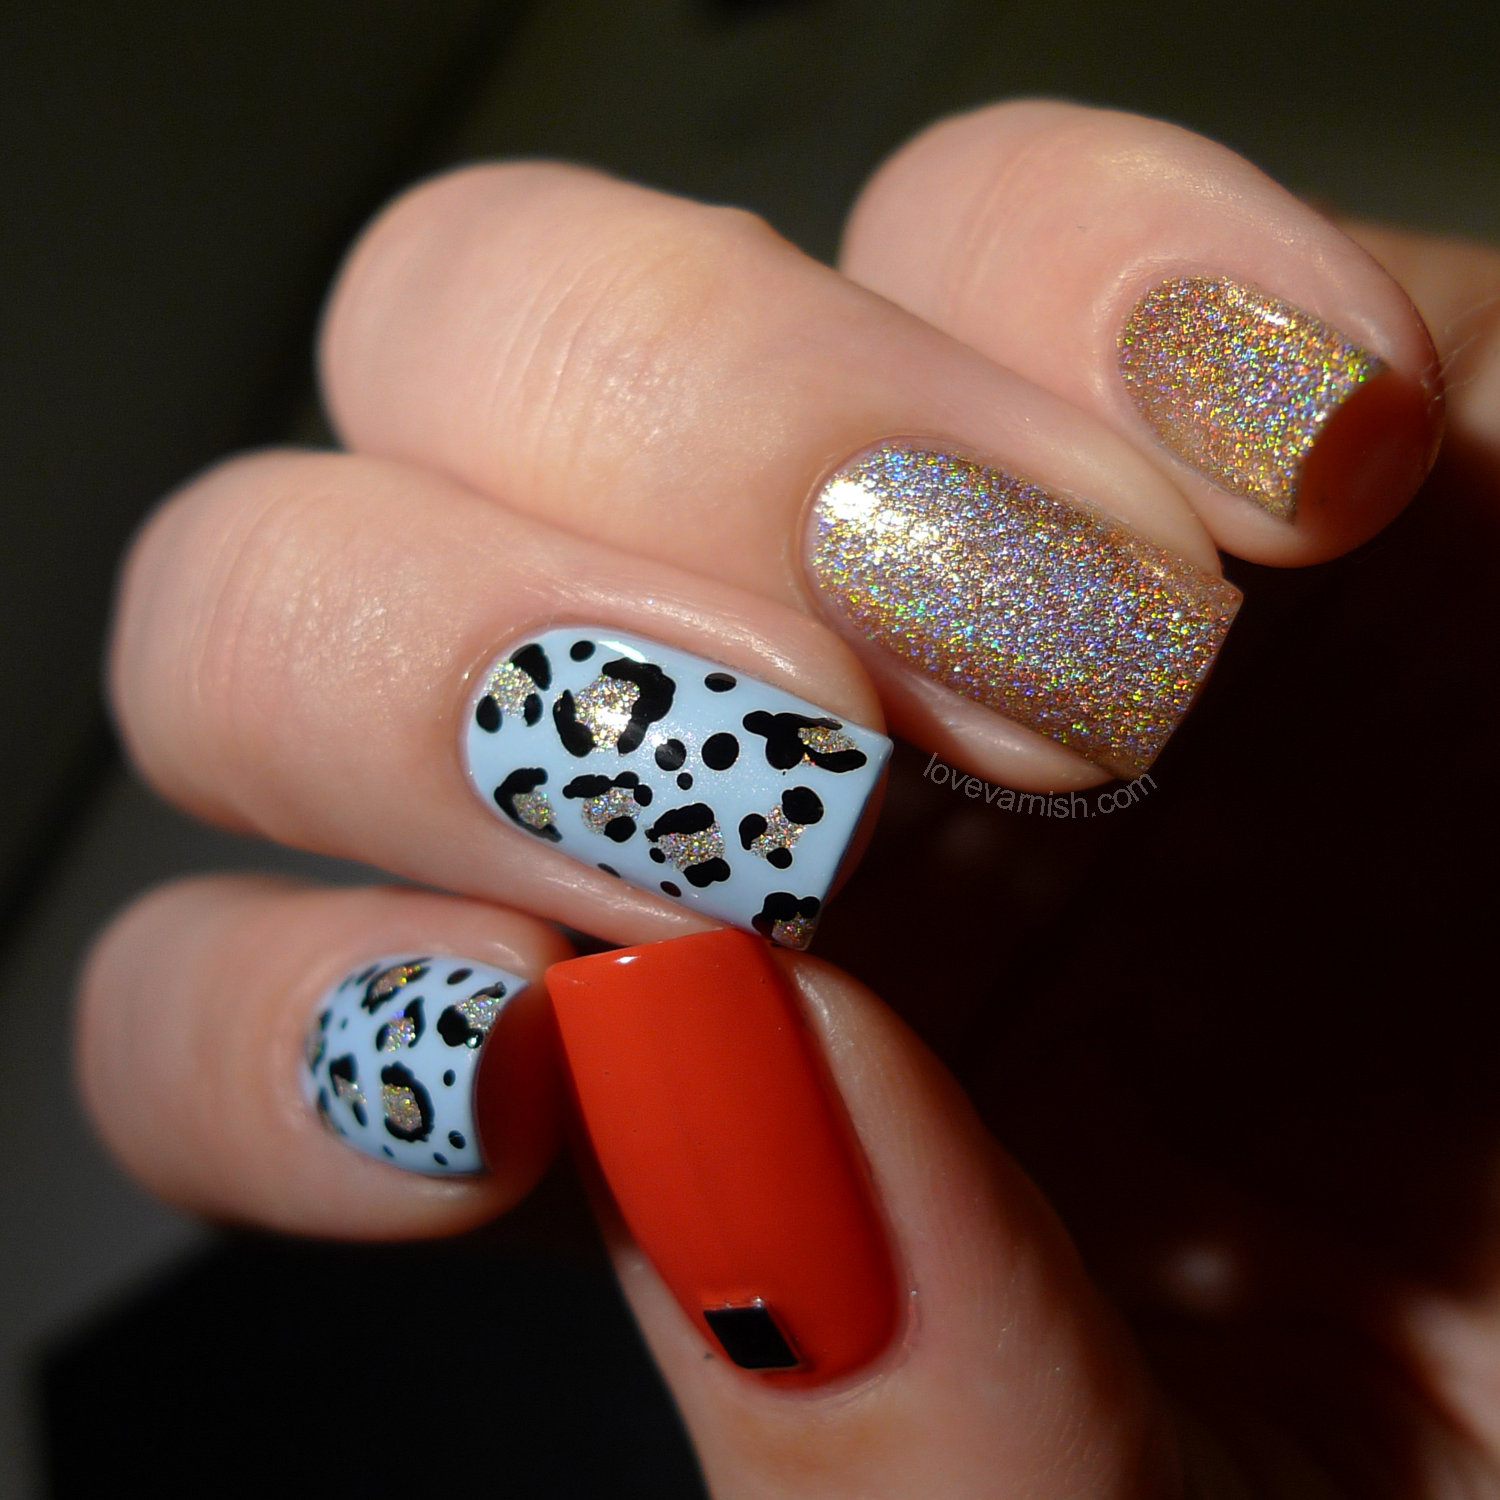 Rimmel Pillow Talk leopard nail art